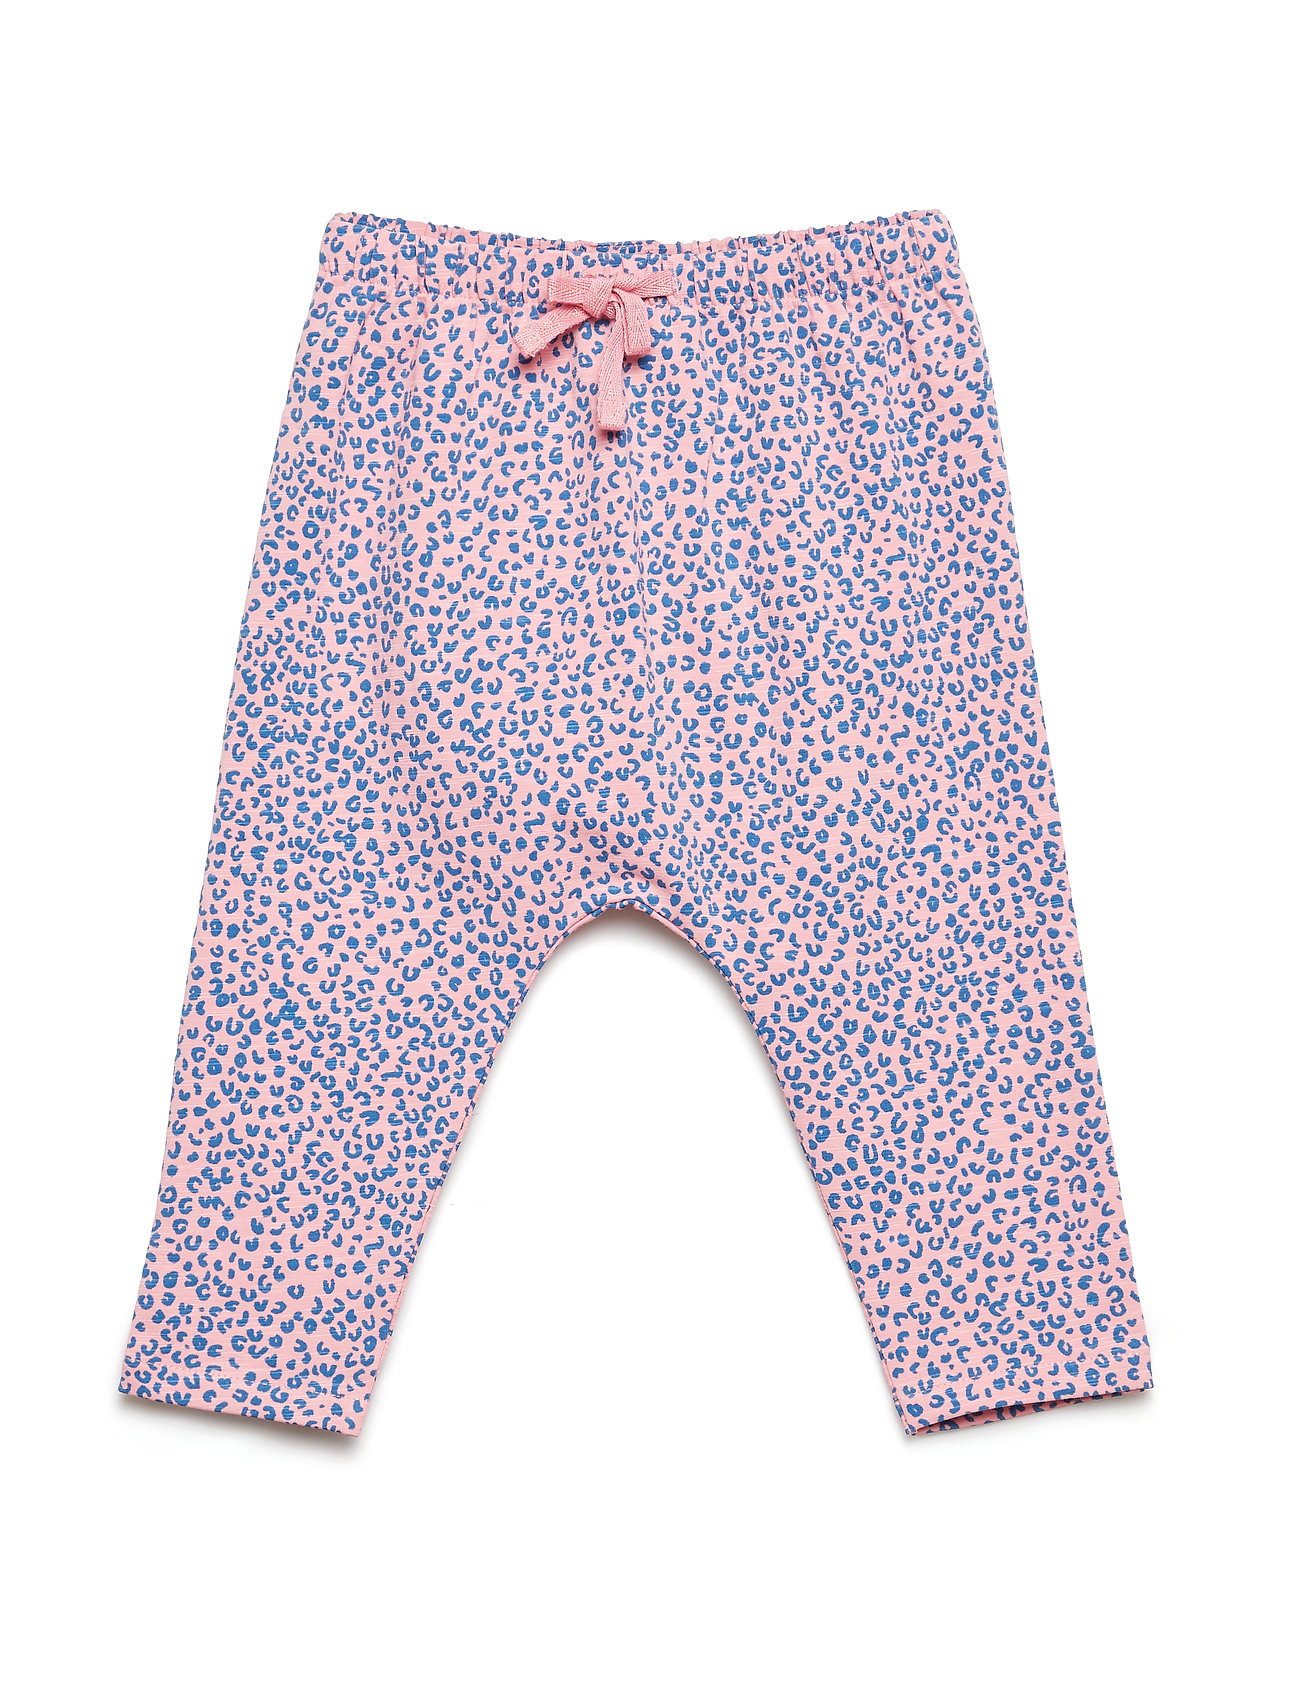 Soft Gallery Hailey Pants - PINK ICING, AOP LEOSPOT